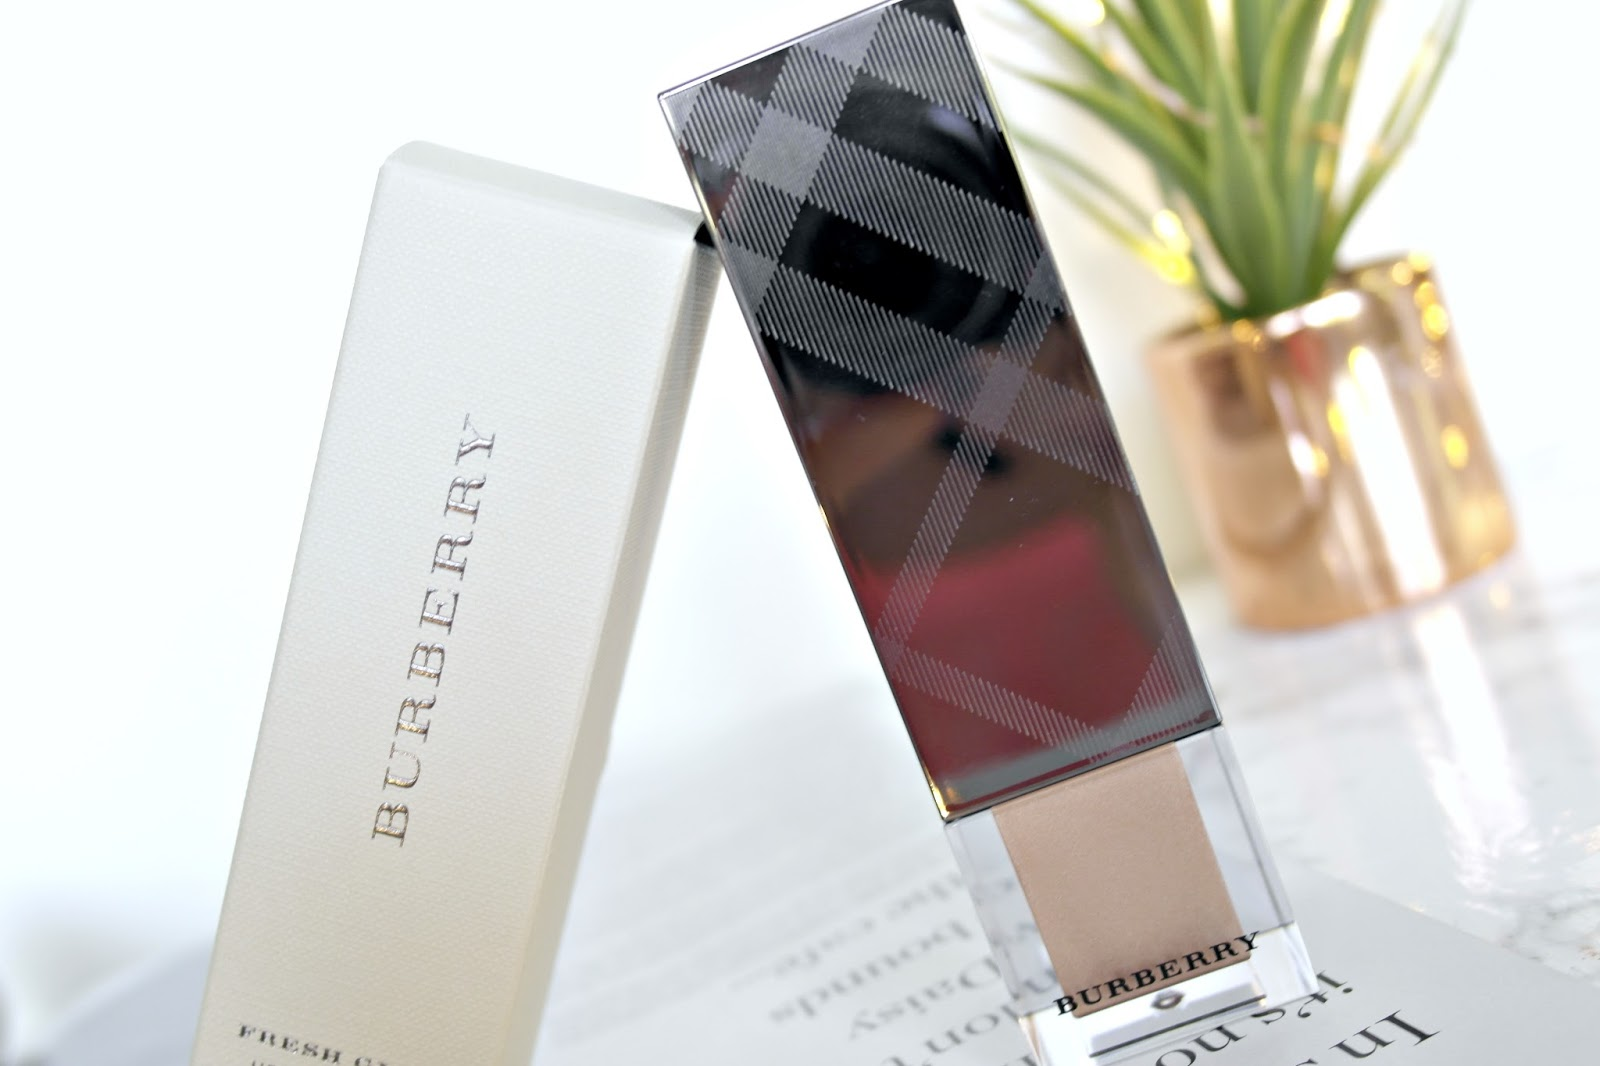 Burberry Fresh Glow Luminous Fluid Base, review, beauty blogger